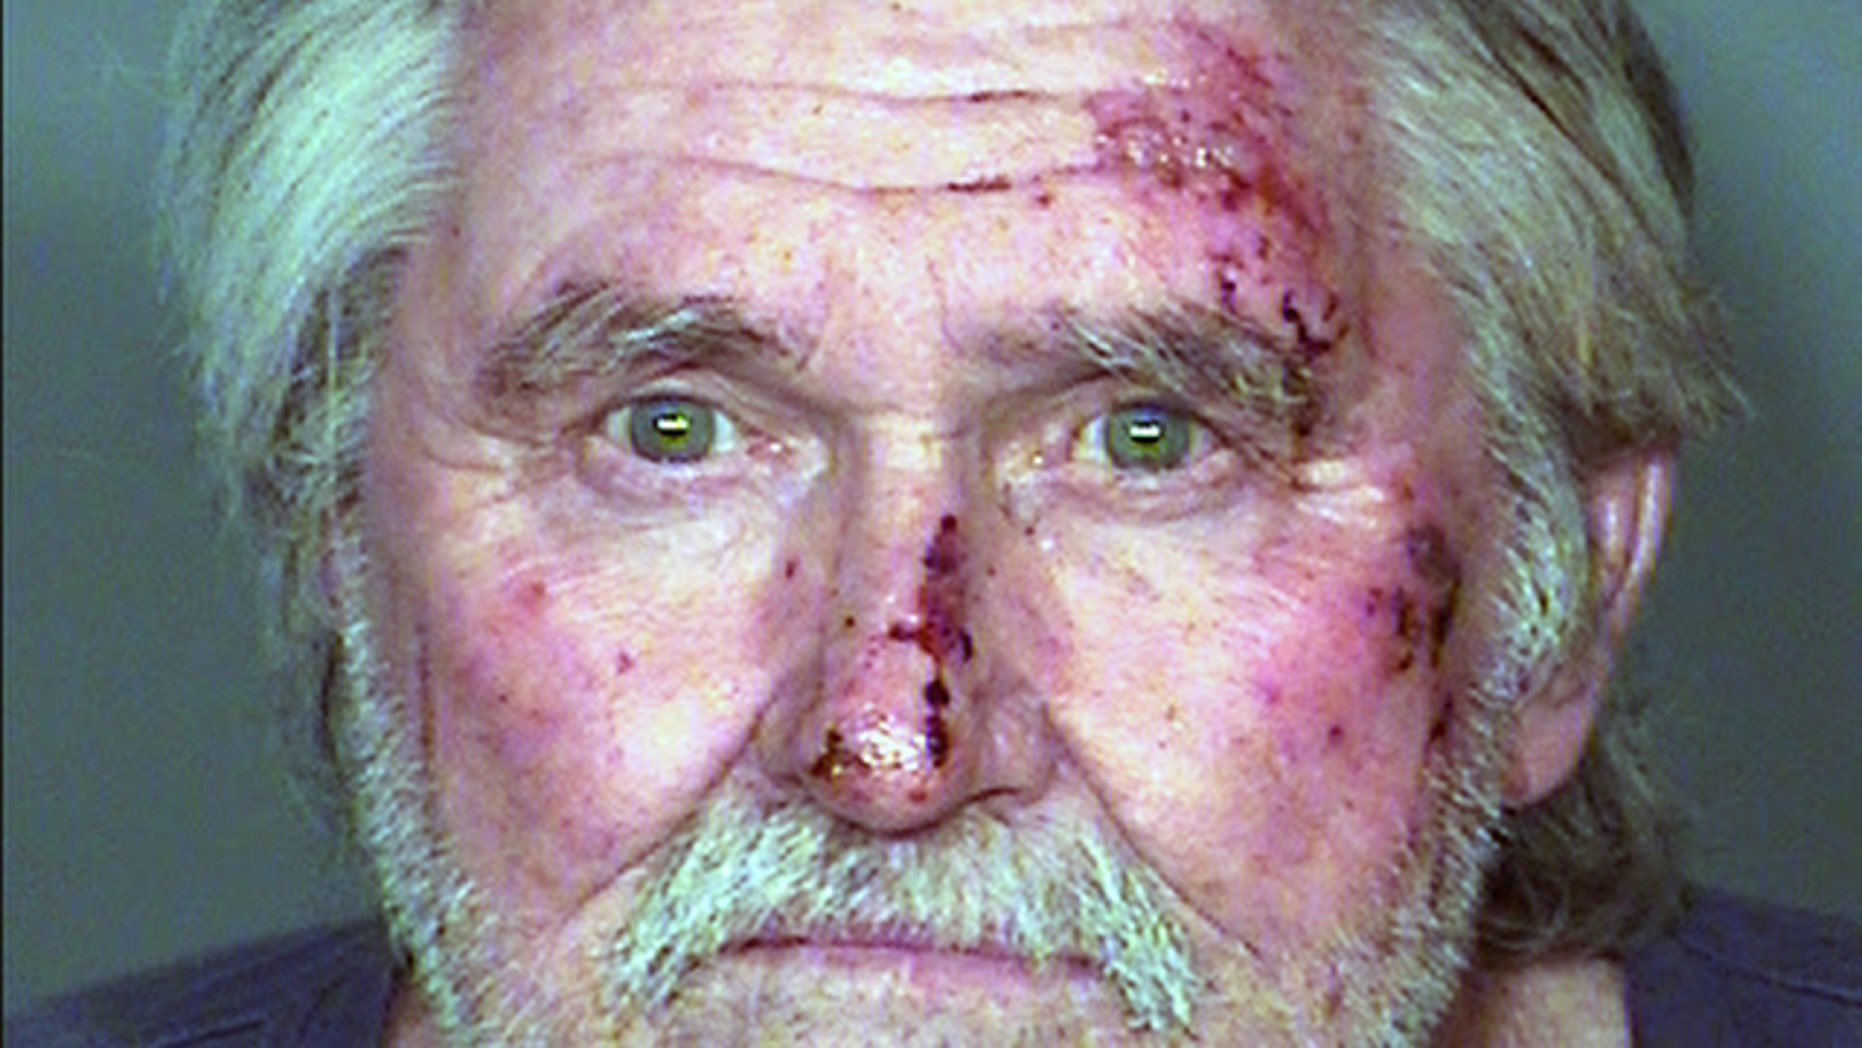 Feb. 2, 2015: This photo provided by the Las Vegas Metropolitan Police Department shows Larry Reid, the brother of U.S. Senate Democratic Leader Harry Reid. The Nevada Highway Patrol said that Larry Reid was arrested on misdemeanor driving under the influence, weapon, battery on an officer and other charges after he was found in a vehicle parked in a dirt median of a state highway. (AP Photo/Las Vegas Metropolitan Police Department)